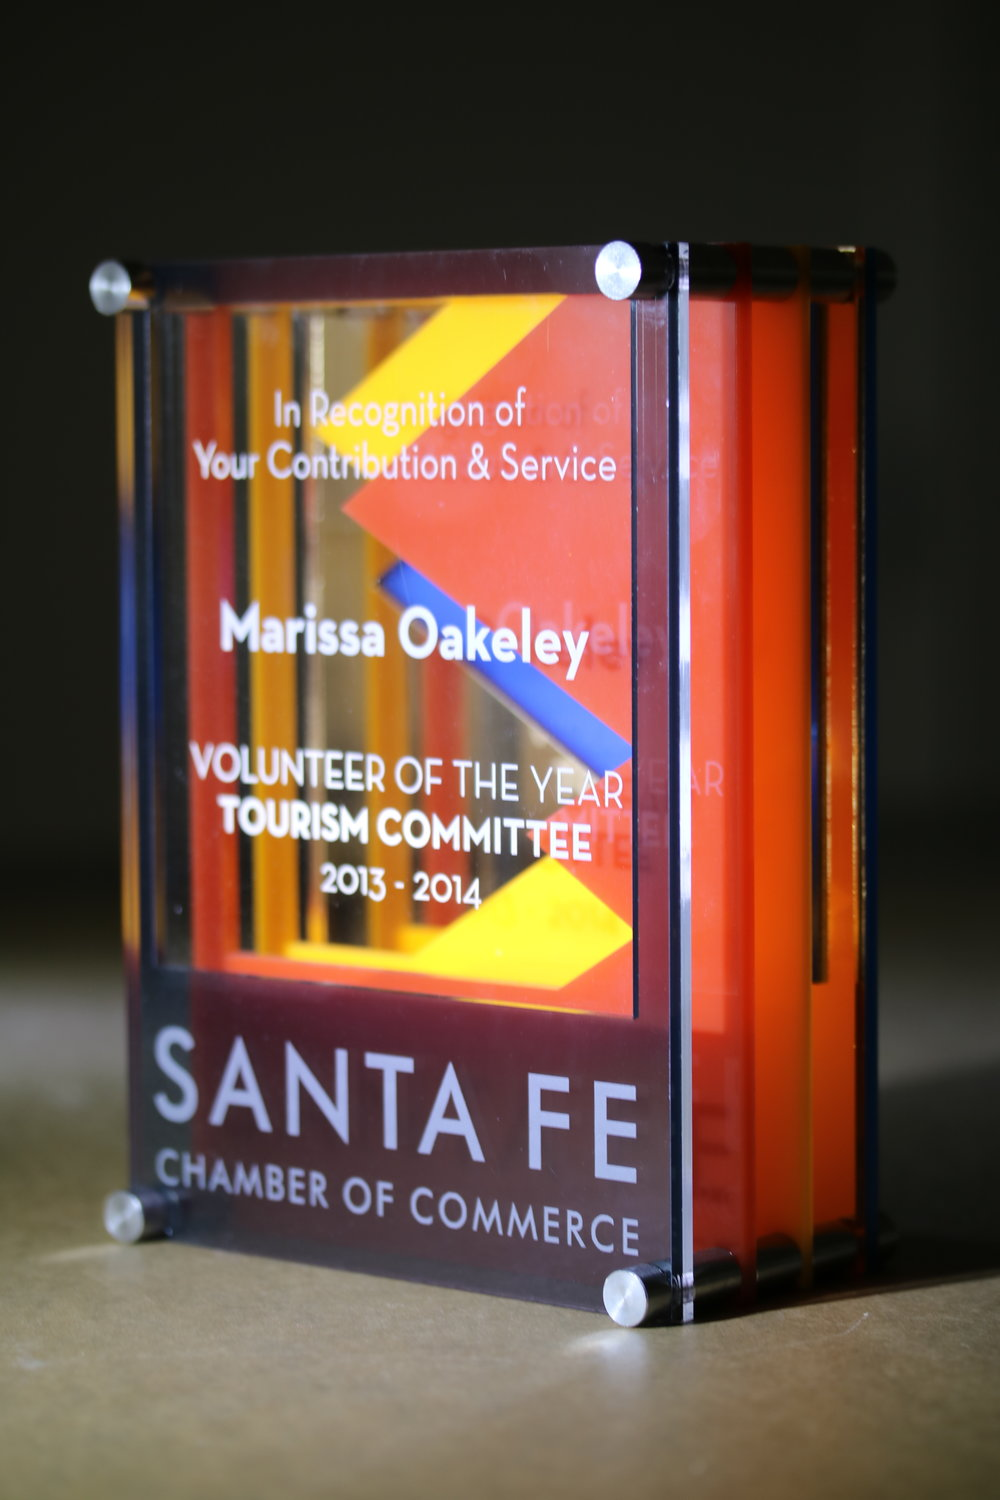 Santa Fe Chamber of Commerce - Volunteer of the Year Award  Contact us for pricing information.